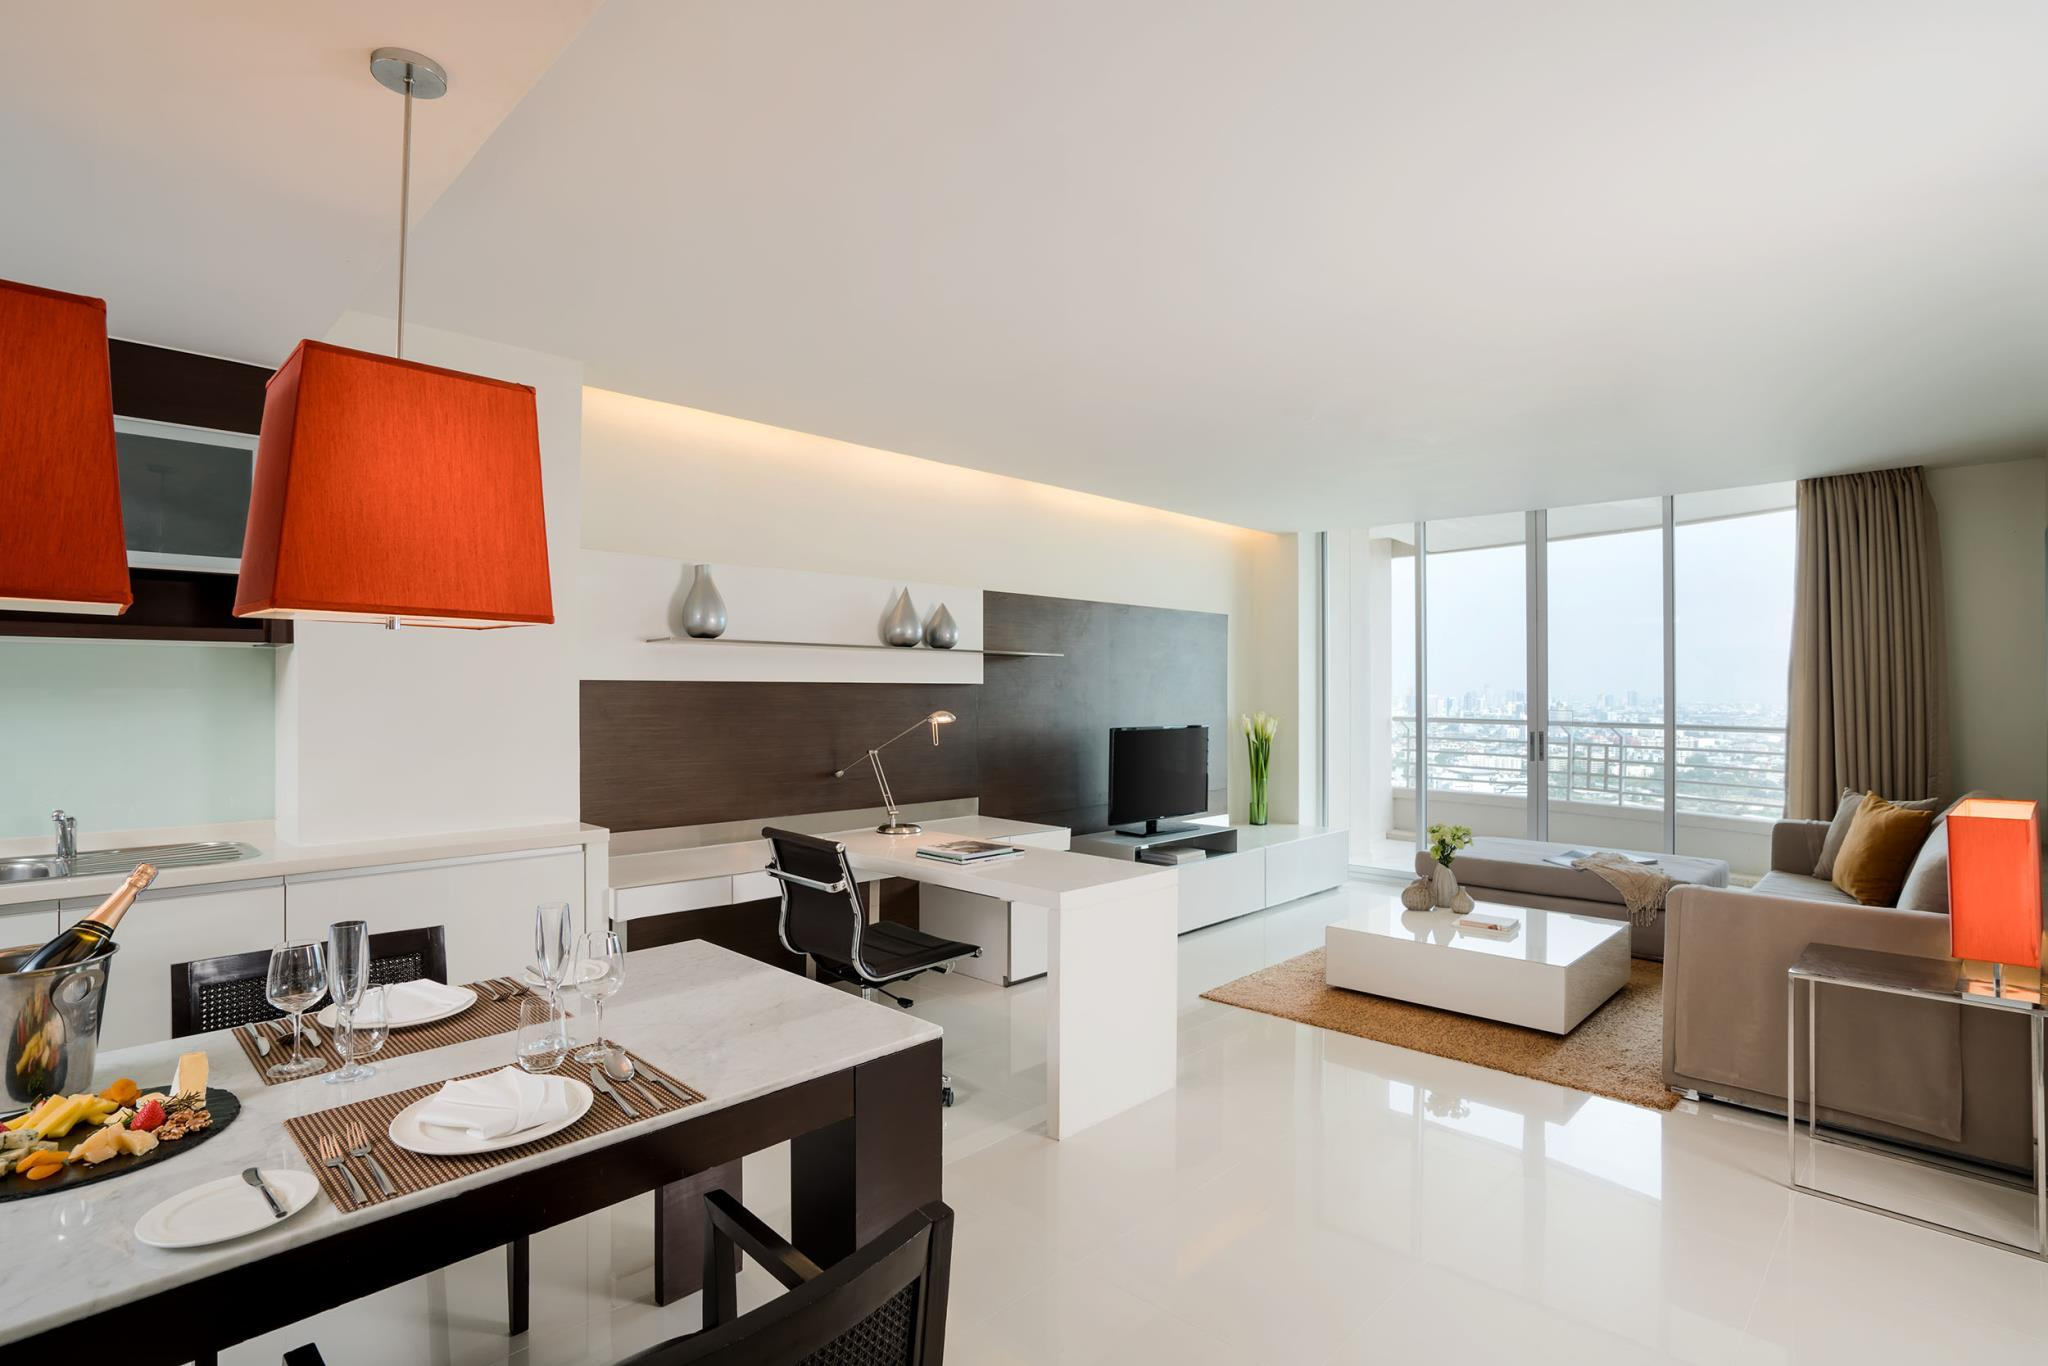 Suite Executiva de 2 Habitacions (2 Bedroom Executive Suite)